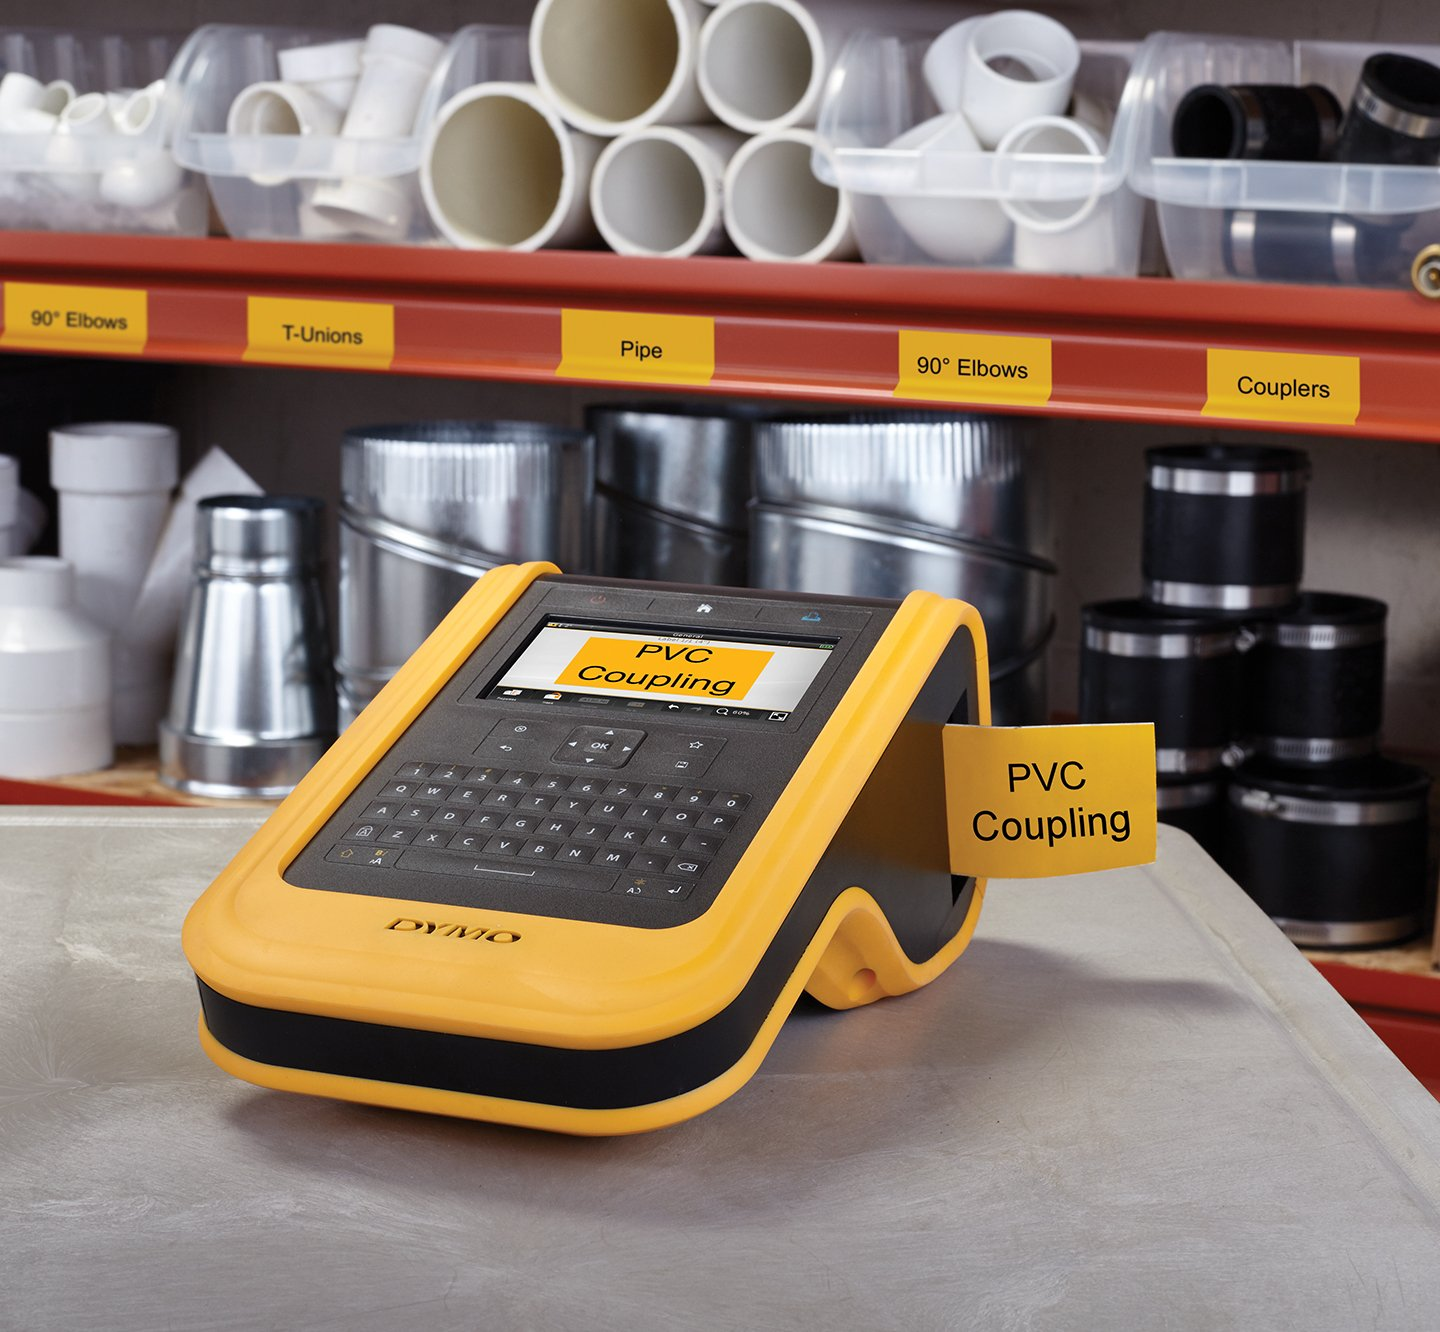 X T L label maker printing a yellow label for P V C Coupling.